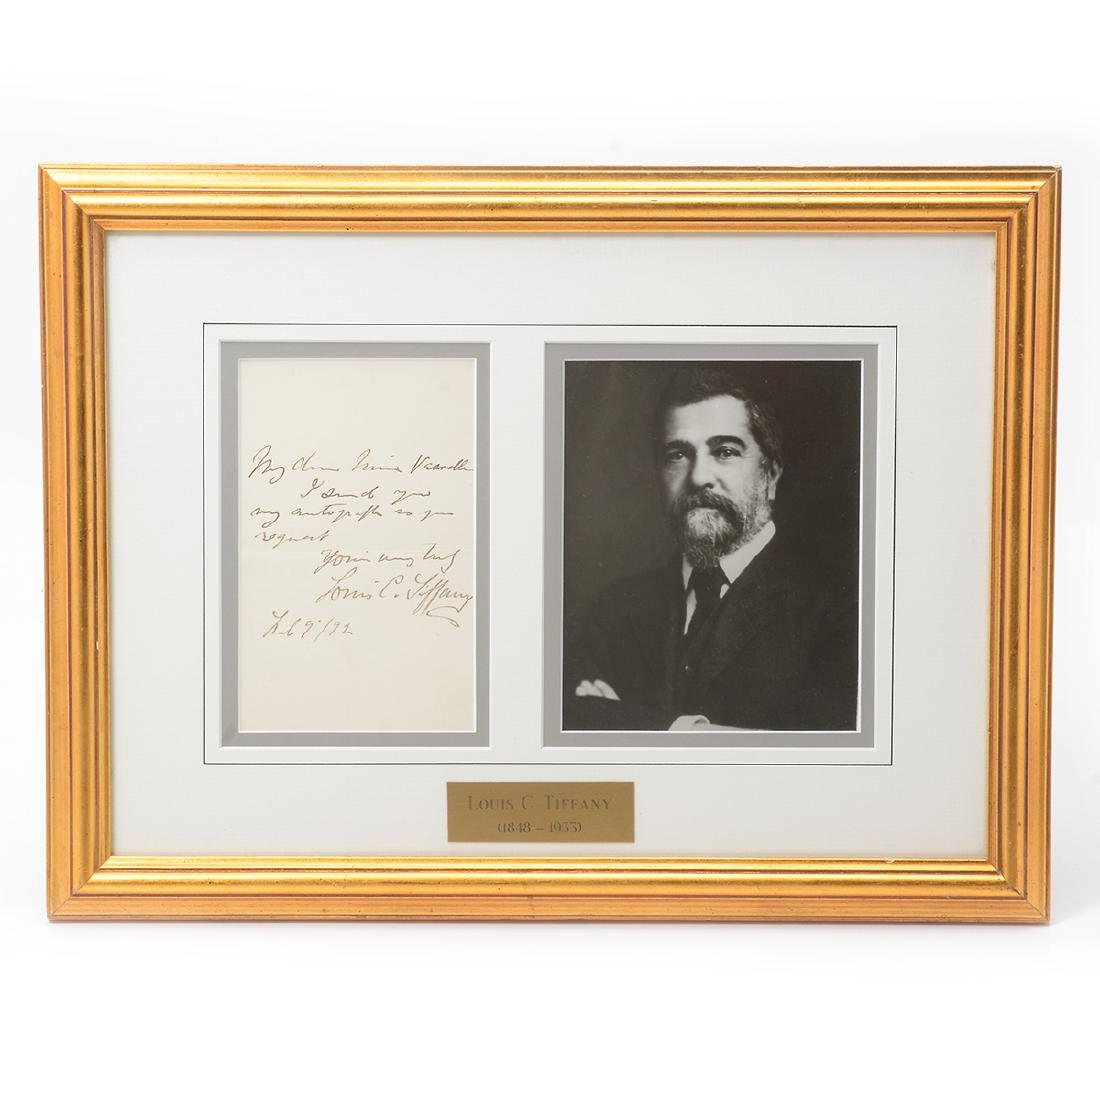 Signed Letter by Louis C. Tiffany Along with Photo,